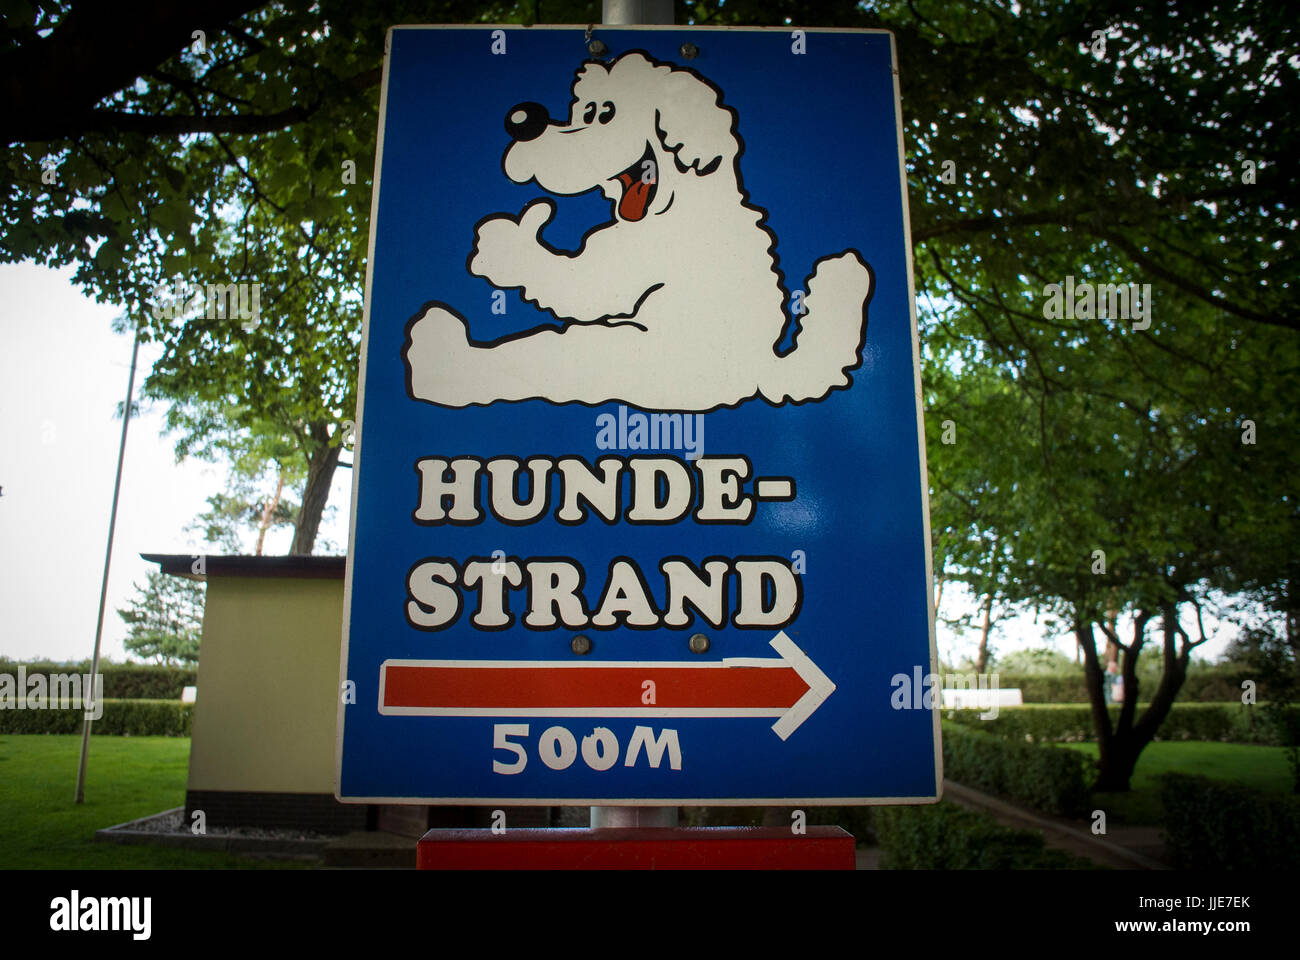 Directions to the dog friendly beach on the promenade of the Seaside town of Zinnowitz in Germany. - Stock Image